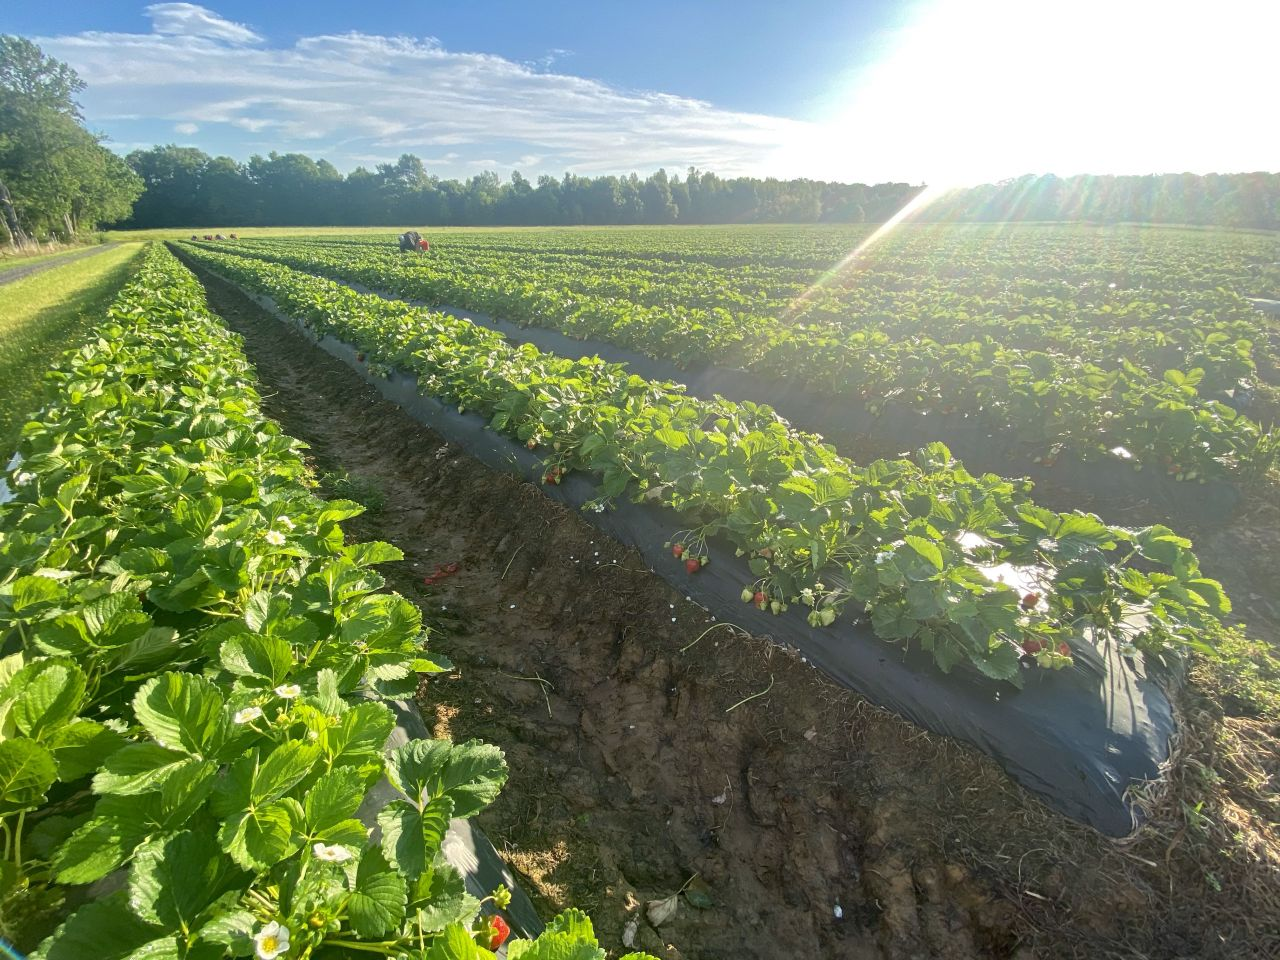 Strawberry plant rows at Barnhill Orchards